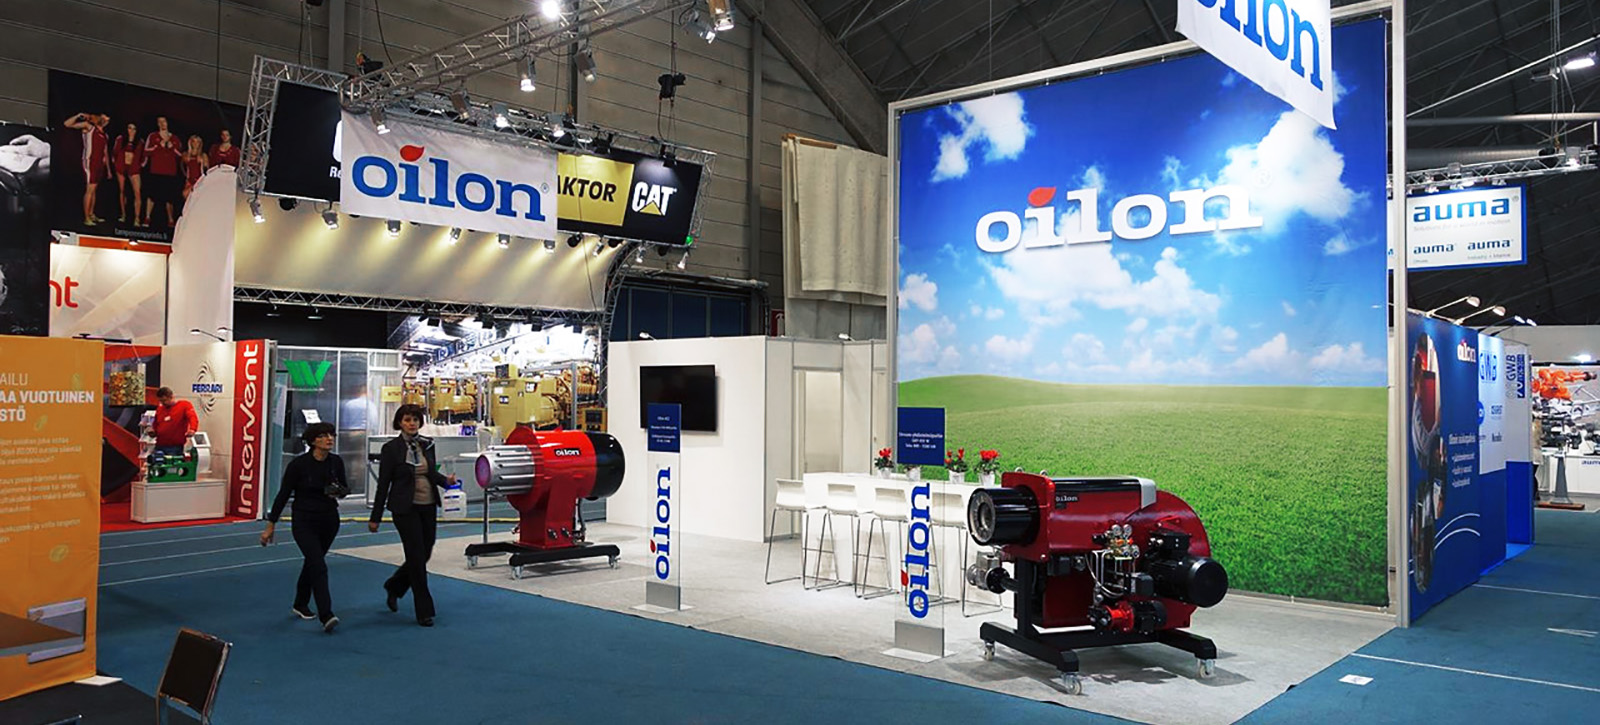 Messua exhibition stand - Oilon, Energia 2016